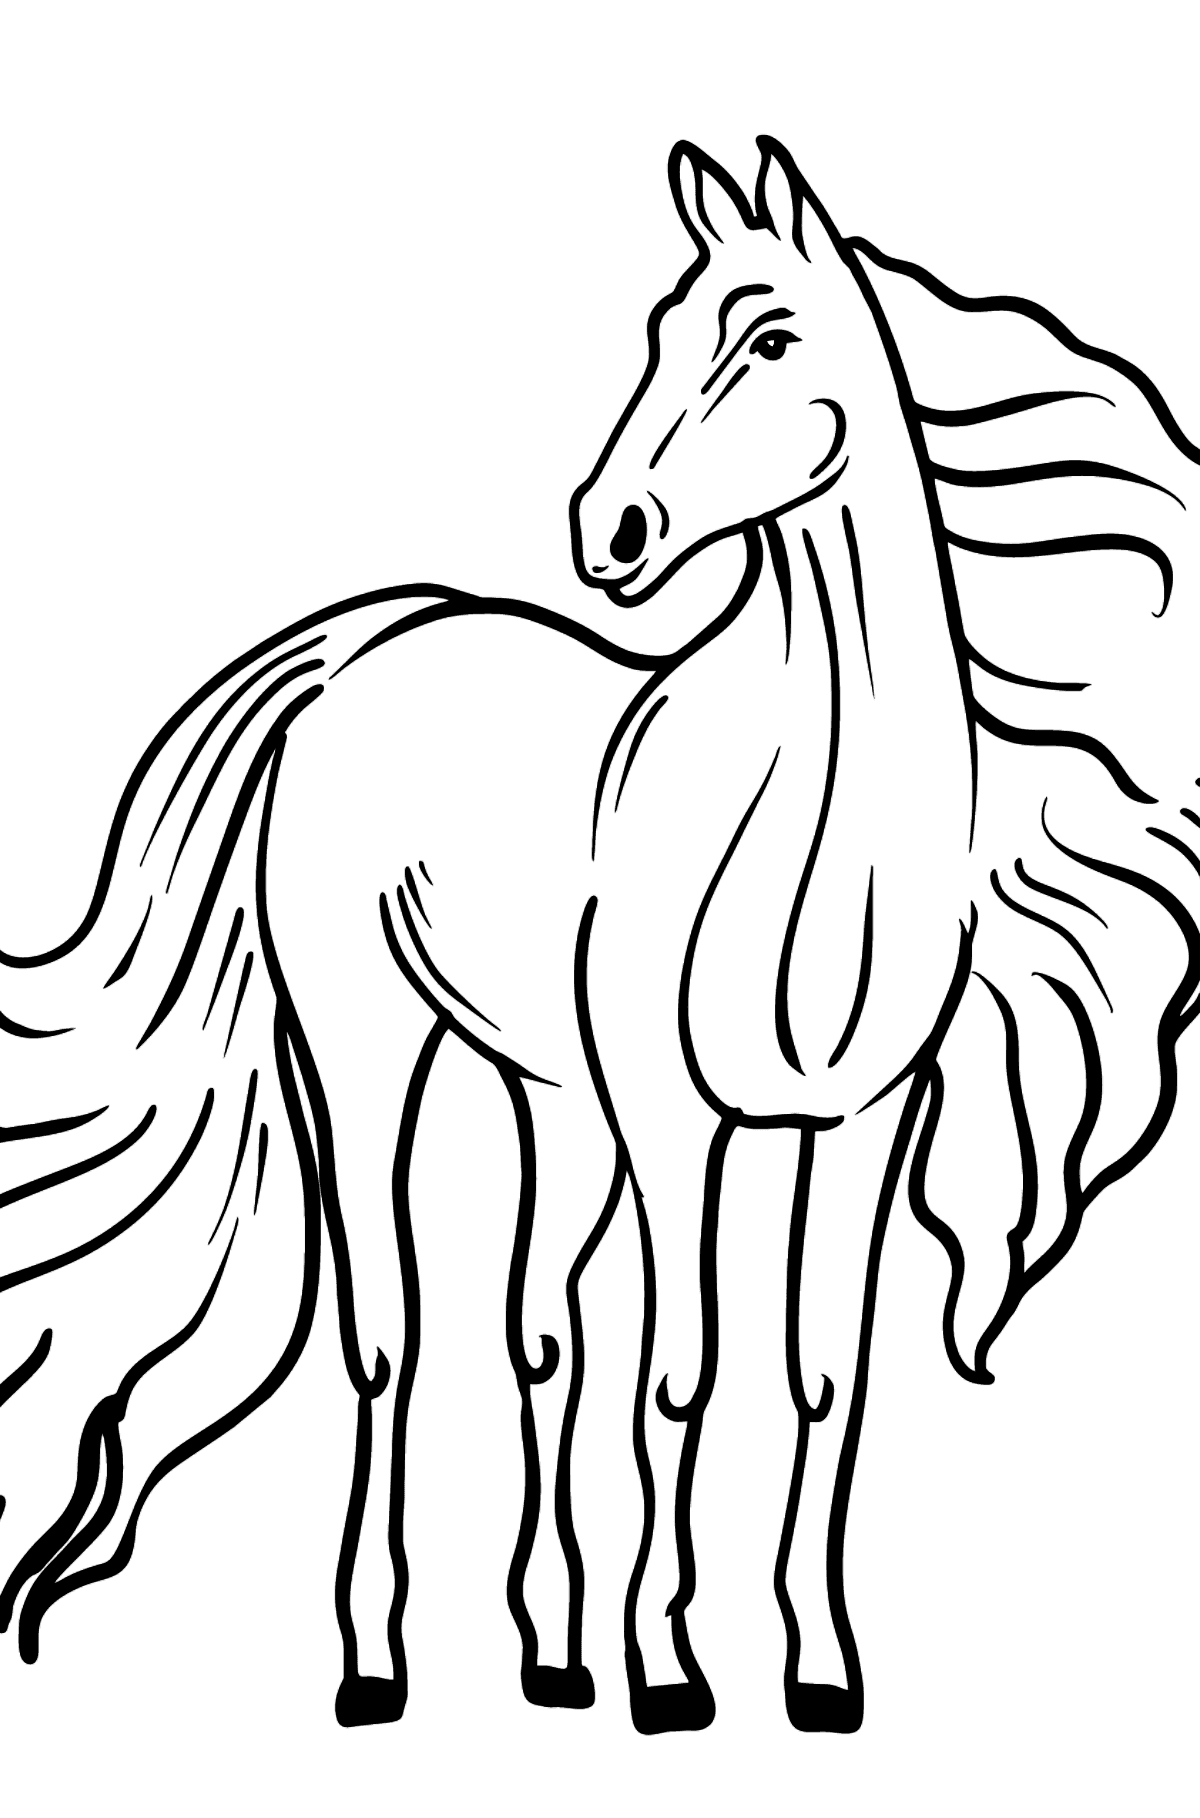 Horse coloring page - Coloring Pages for Kids